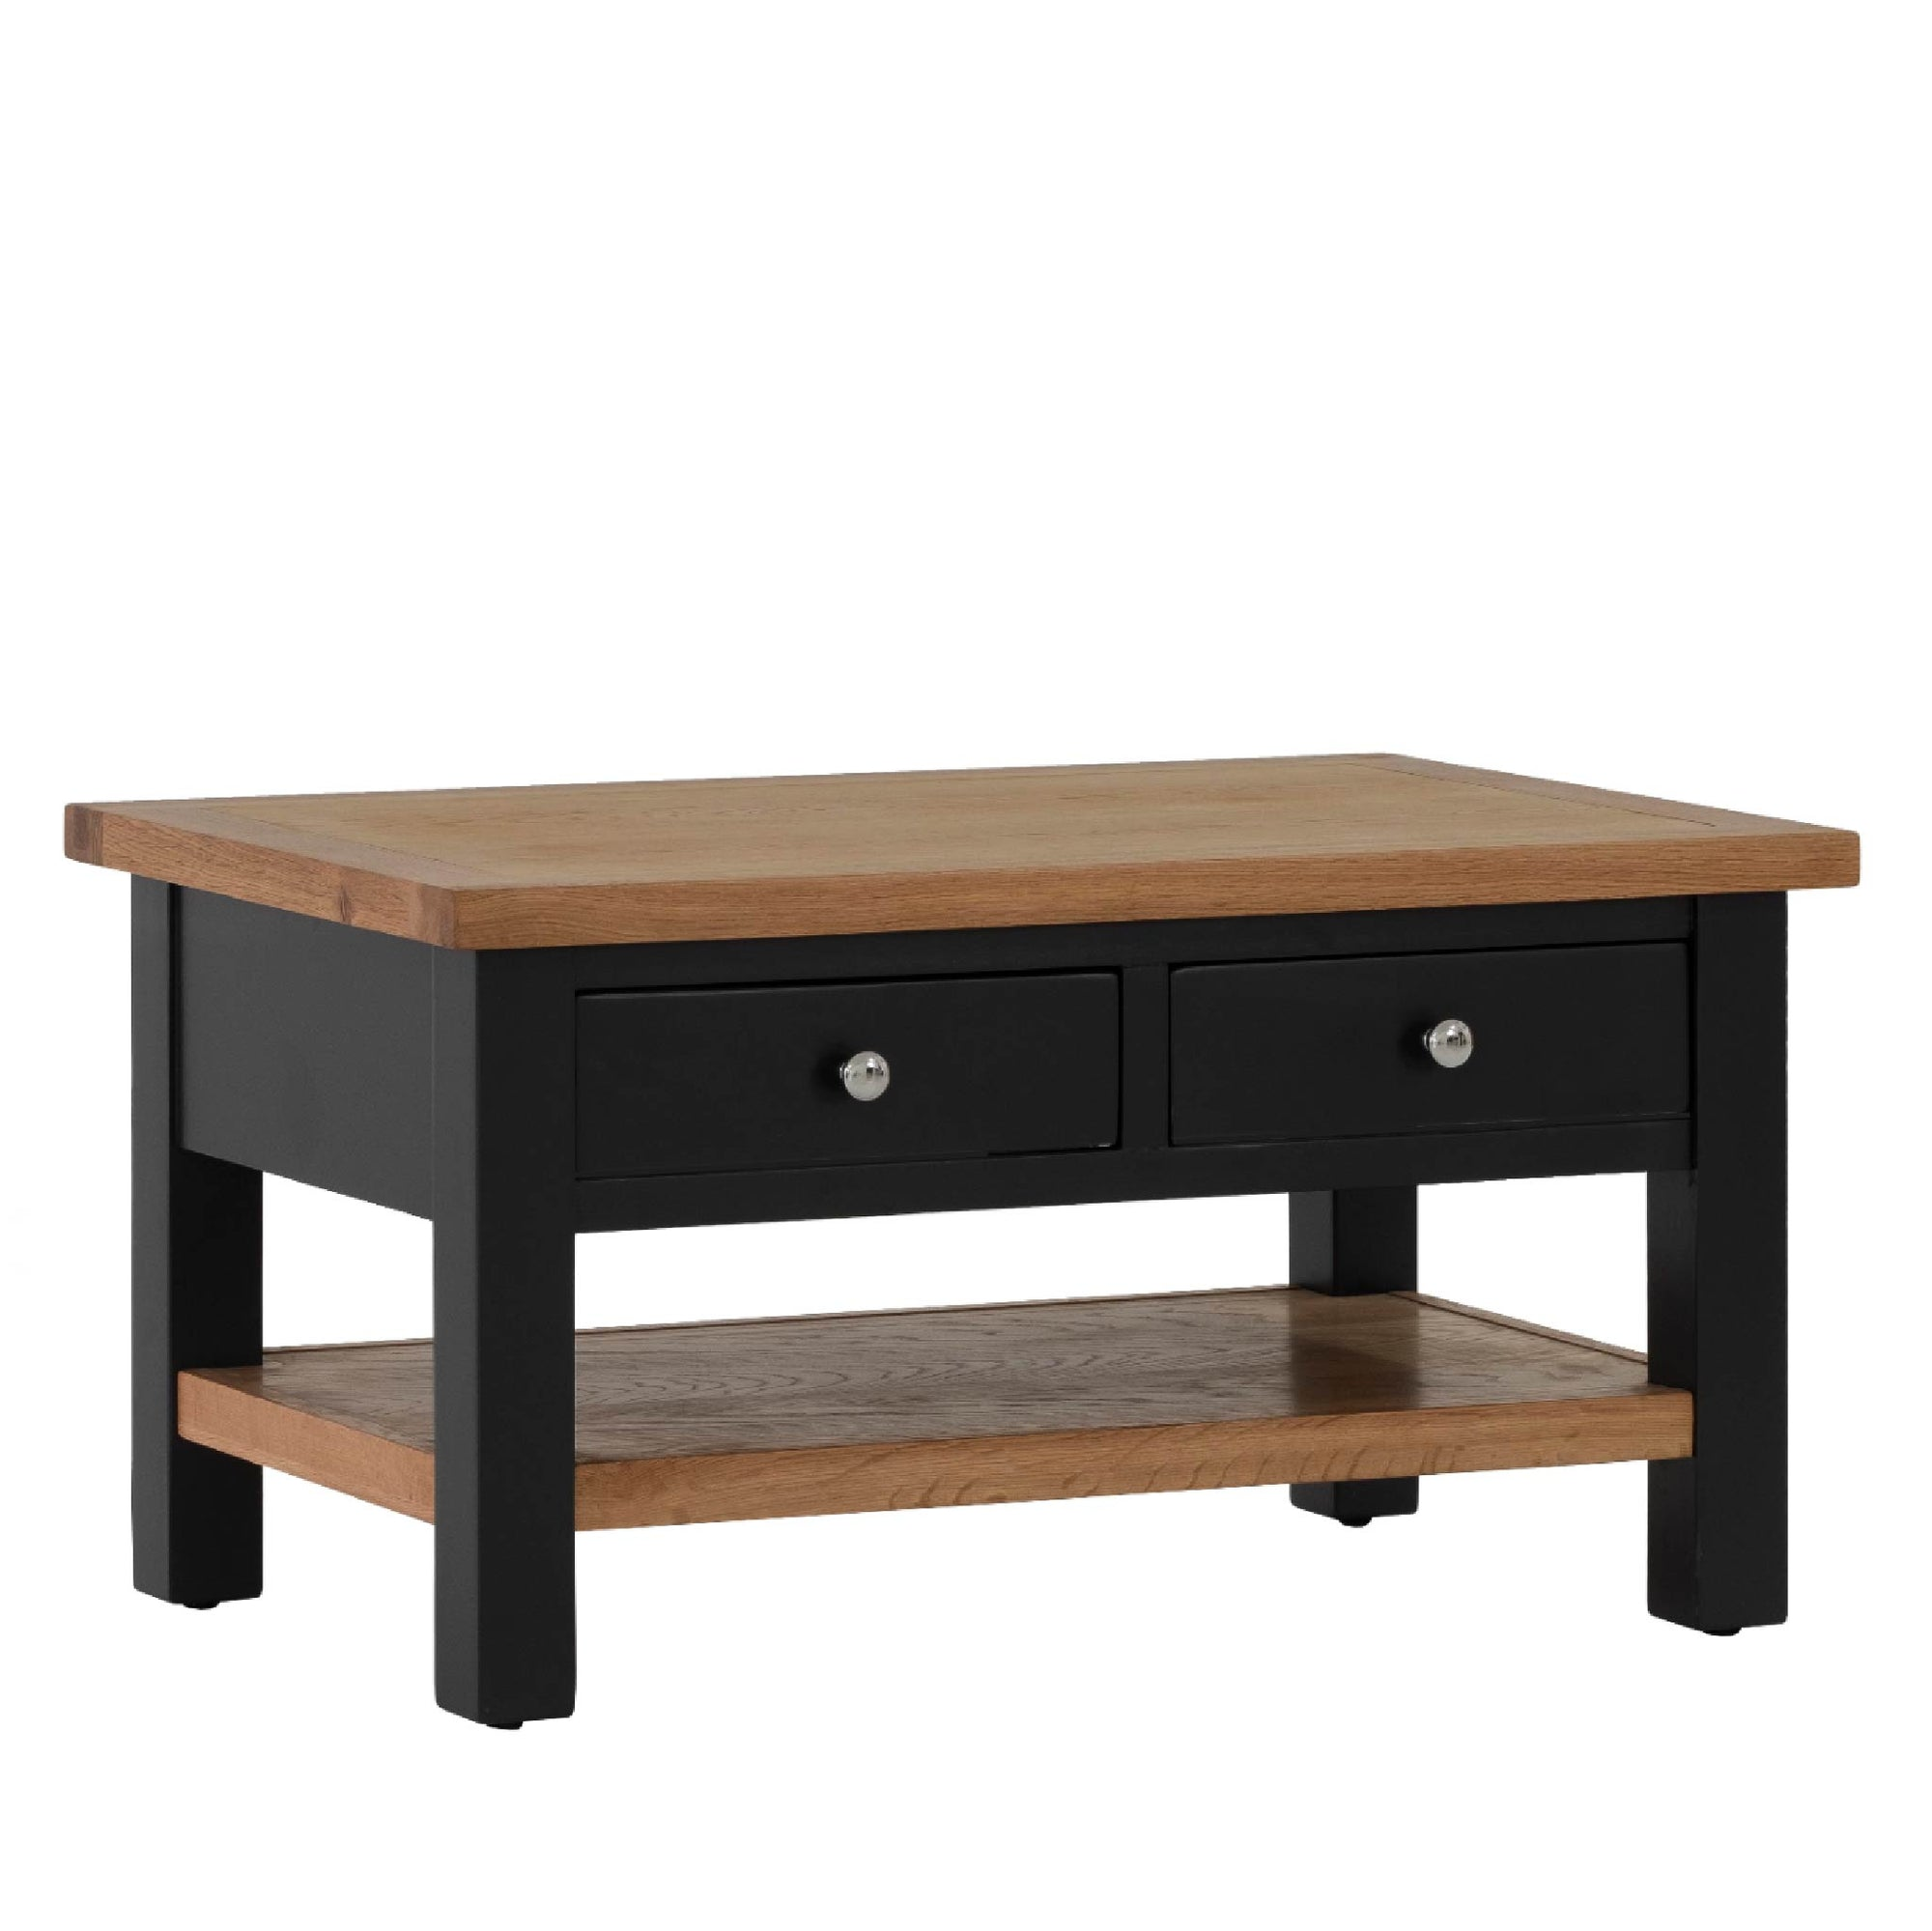 Charlestown Black Coffee Table with 2 Drawers by Roseland Furniture